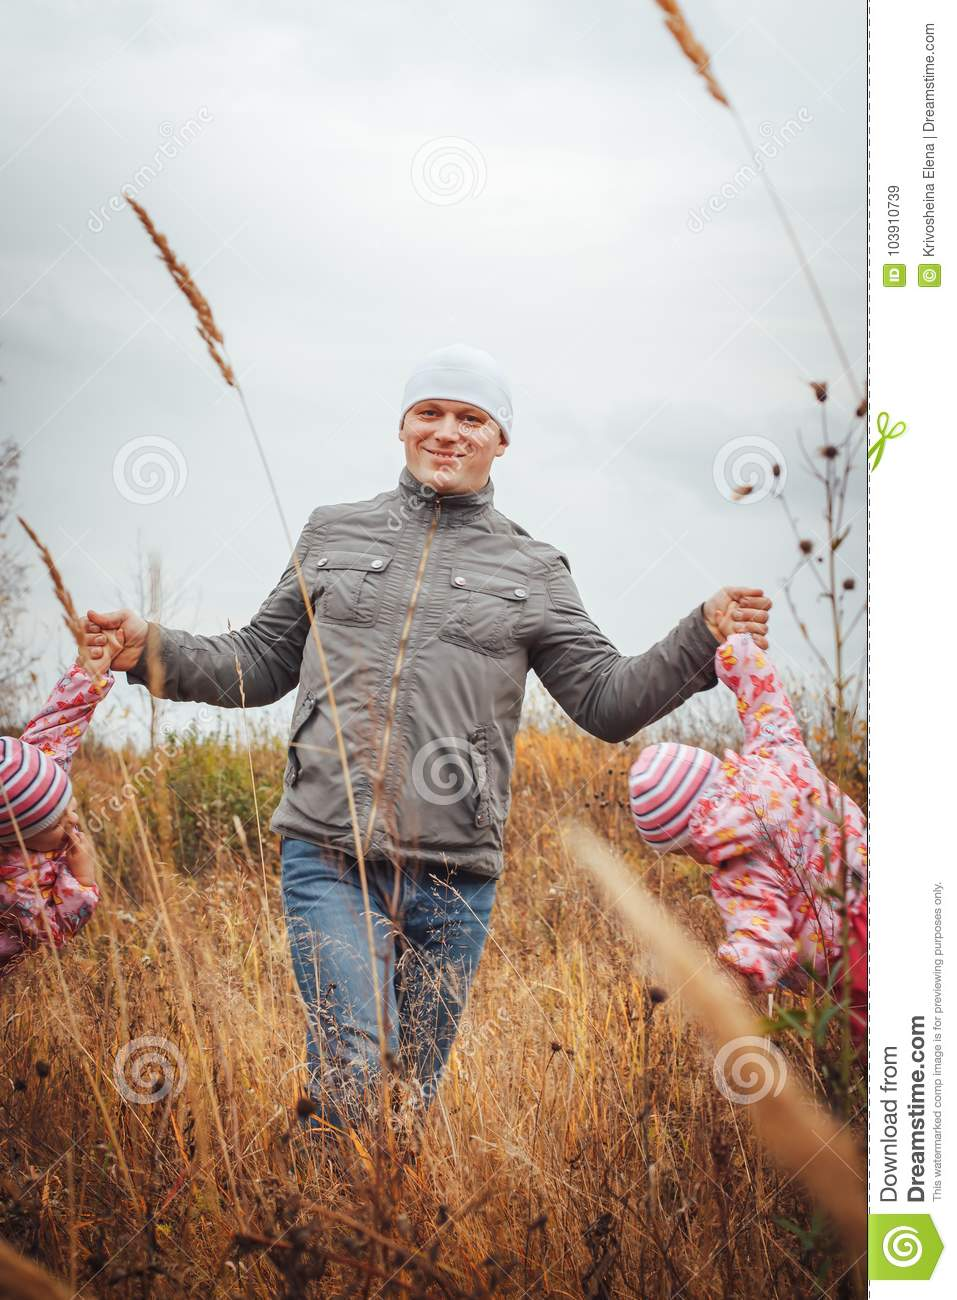 Father and his two daughters child girls have fun in the field